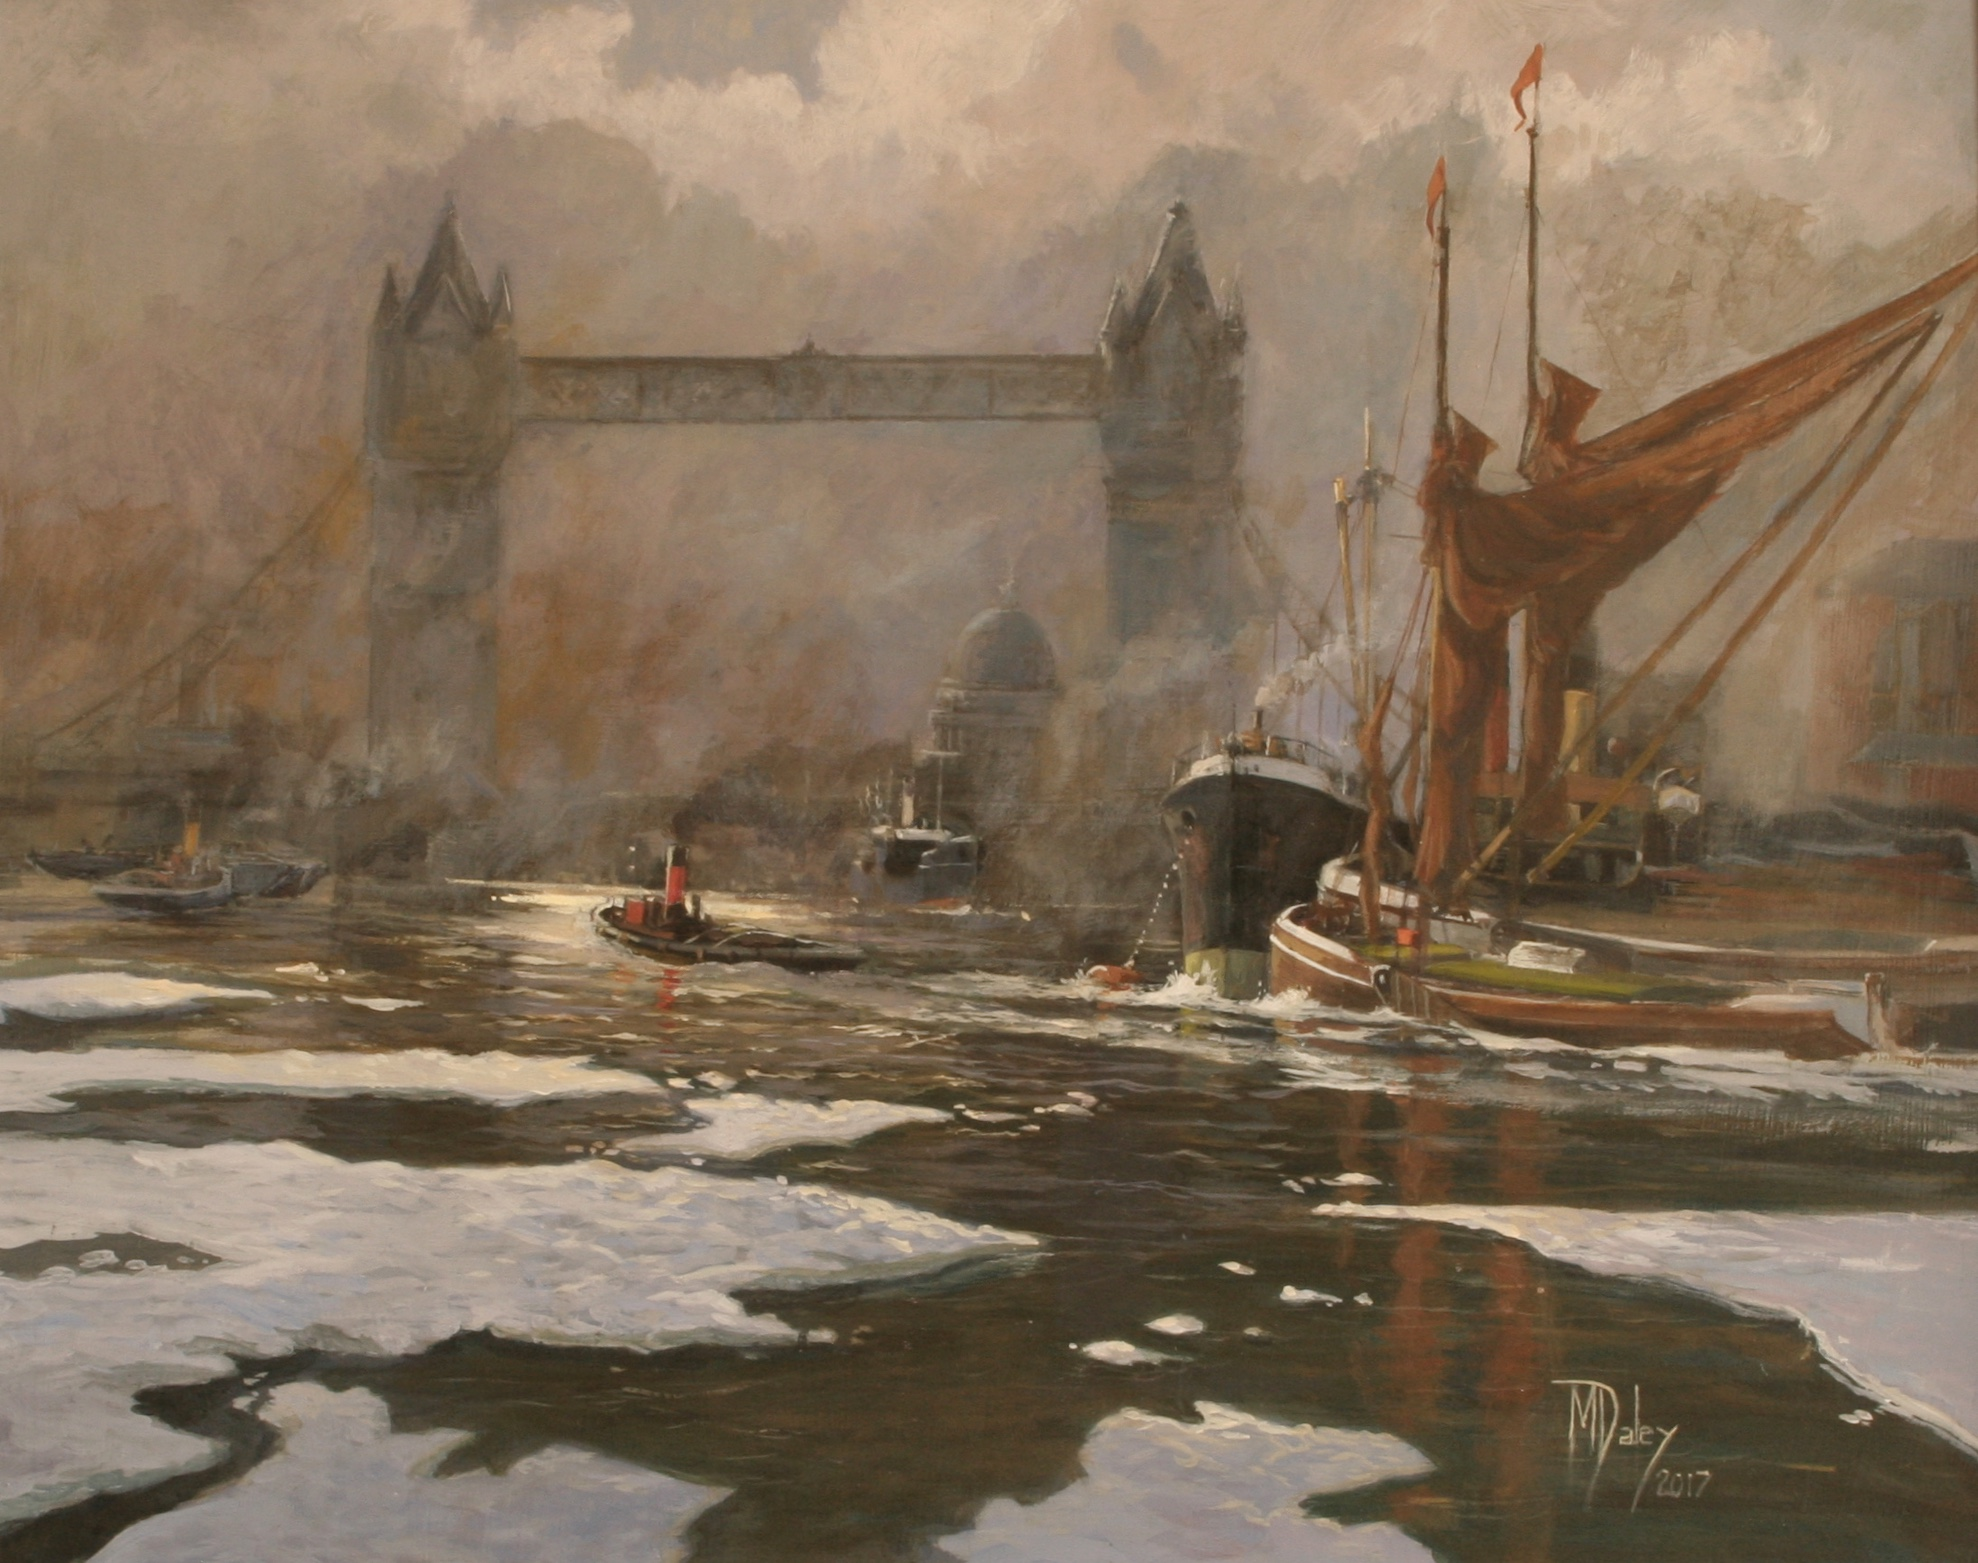 The finished painting:   Fog and Ice on the Thames: 16 x 20 in: Acrylic